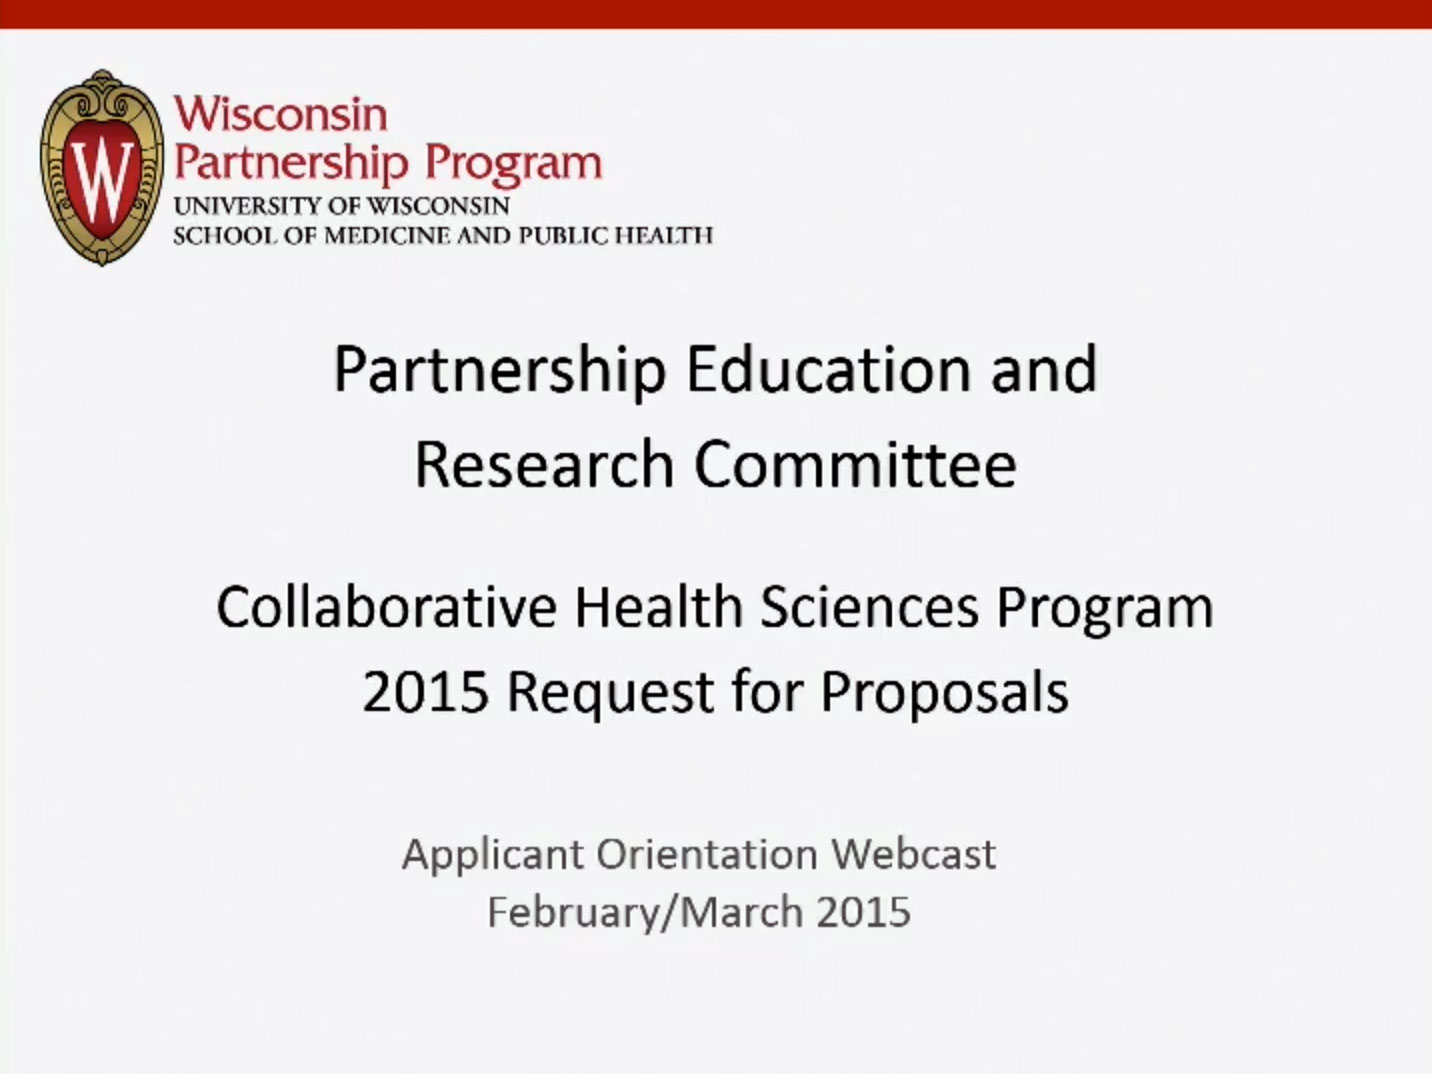 Picture from Partnership Education and Research Committee Collaborative Health Science Program 2015 Call for Proposals video